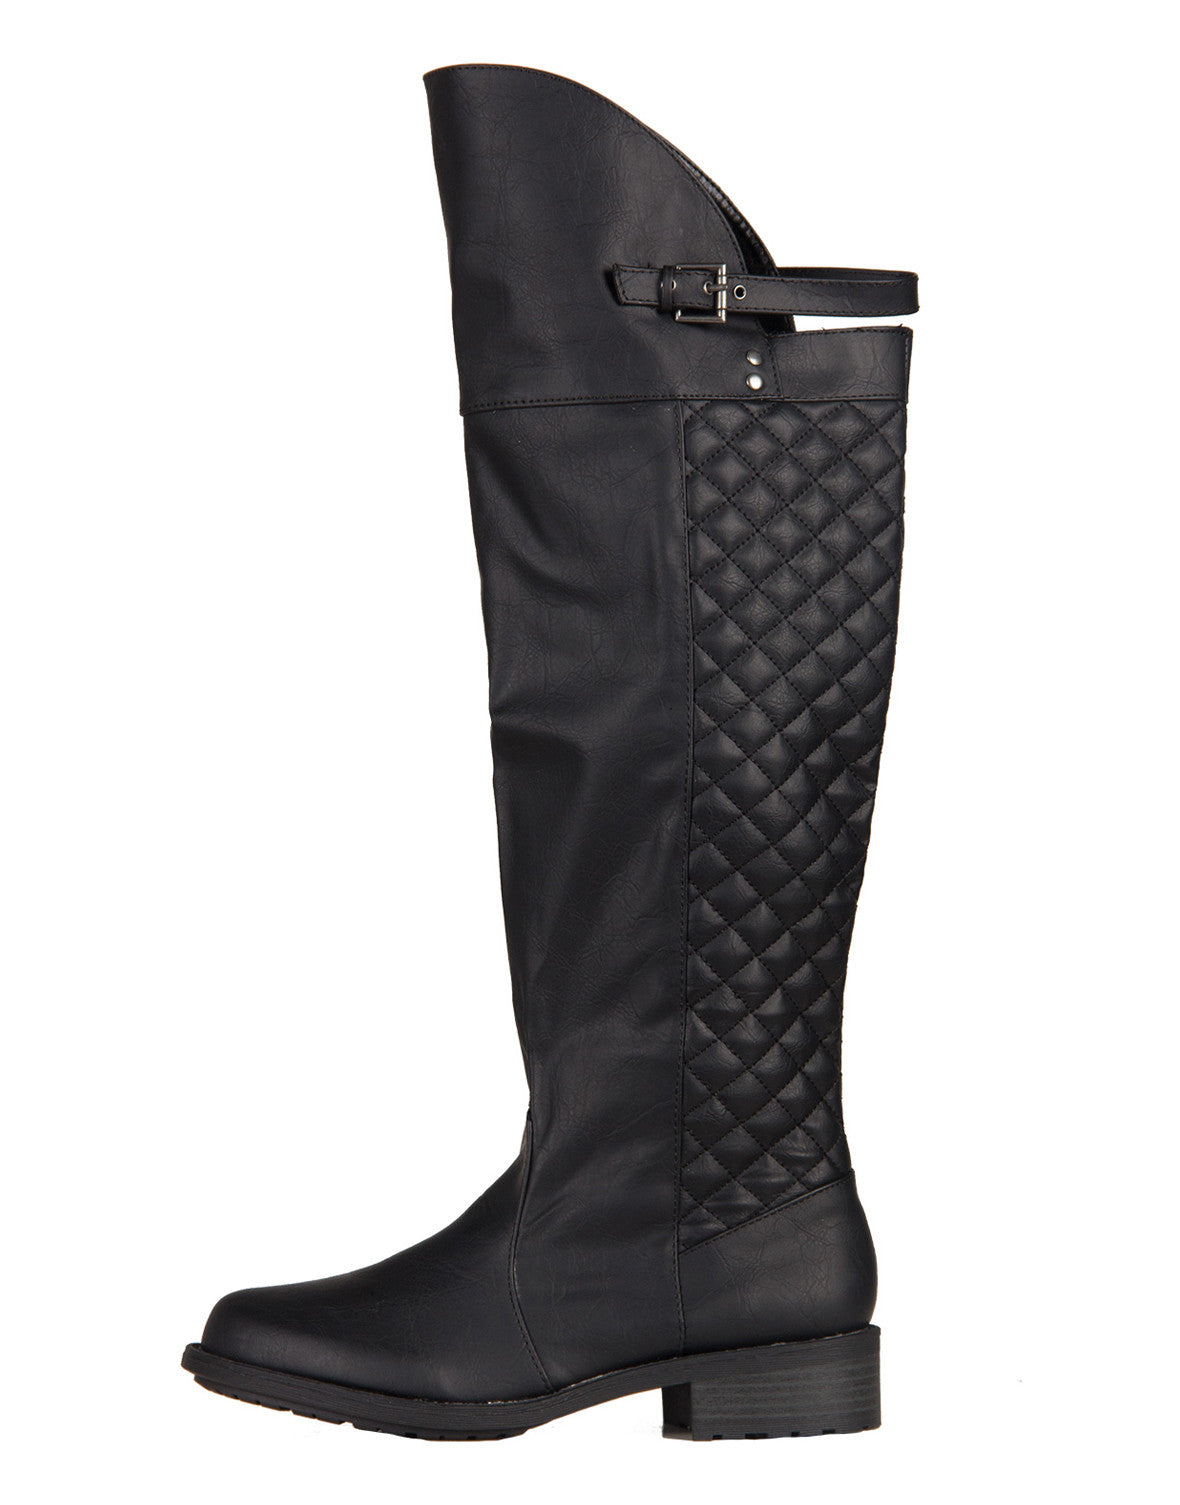 shop sale online faux zealand quilted p stitched really quilt tan new riding nz boots leather